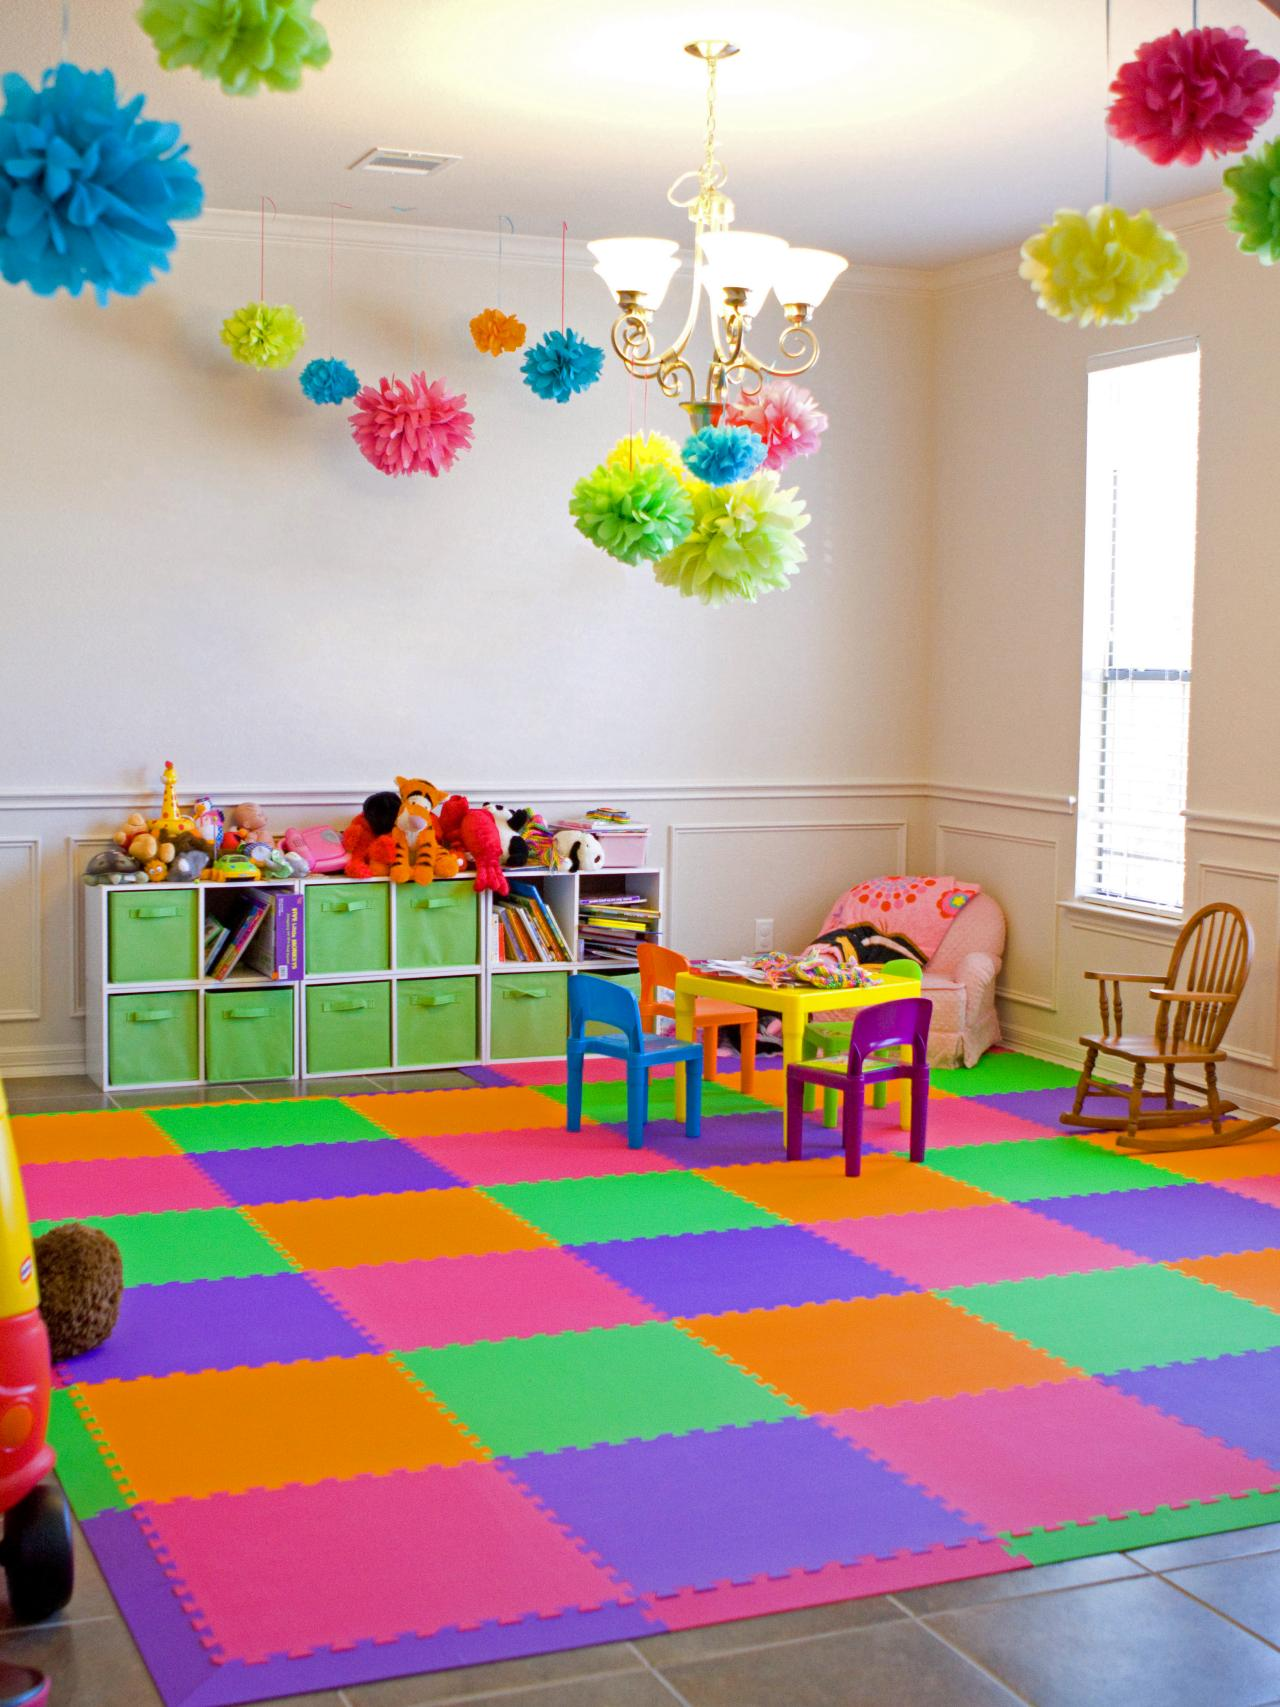 Kids 39 bedroom flooring pictures options ideas hgtv - Colors for kids room ...